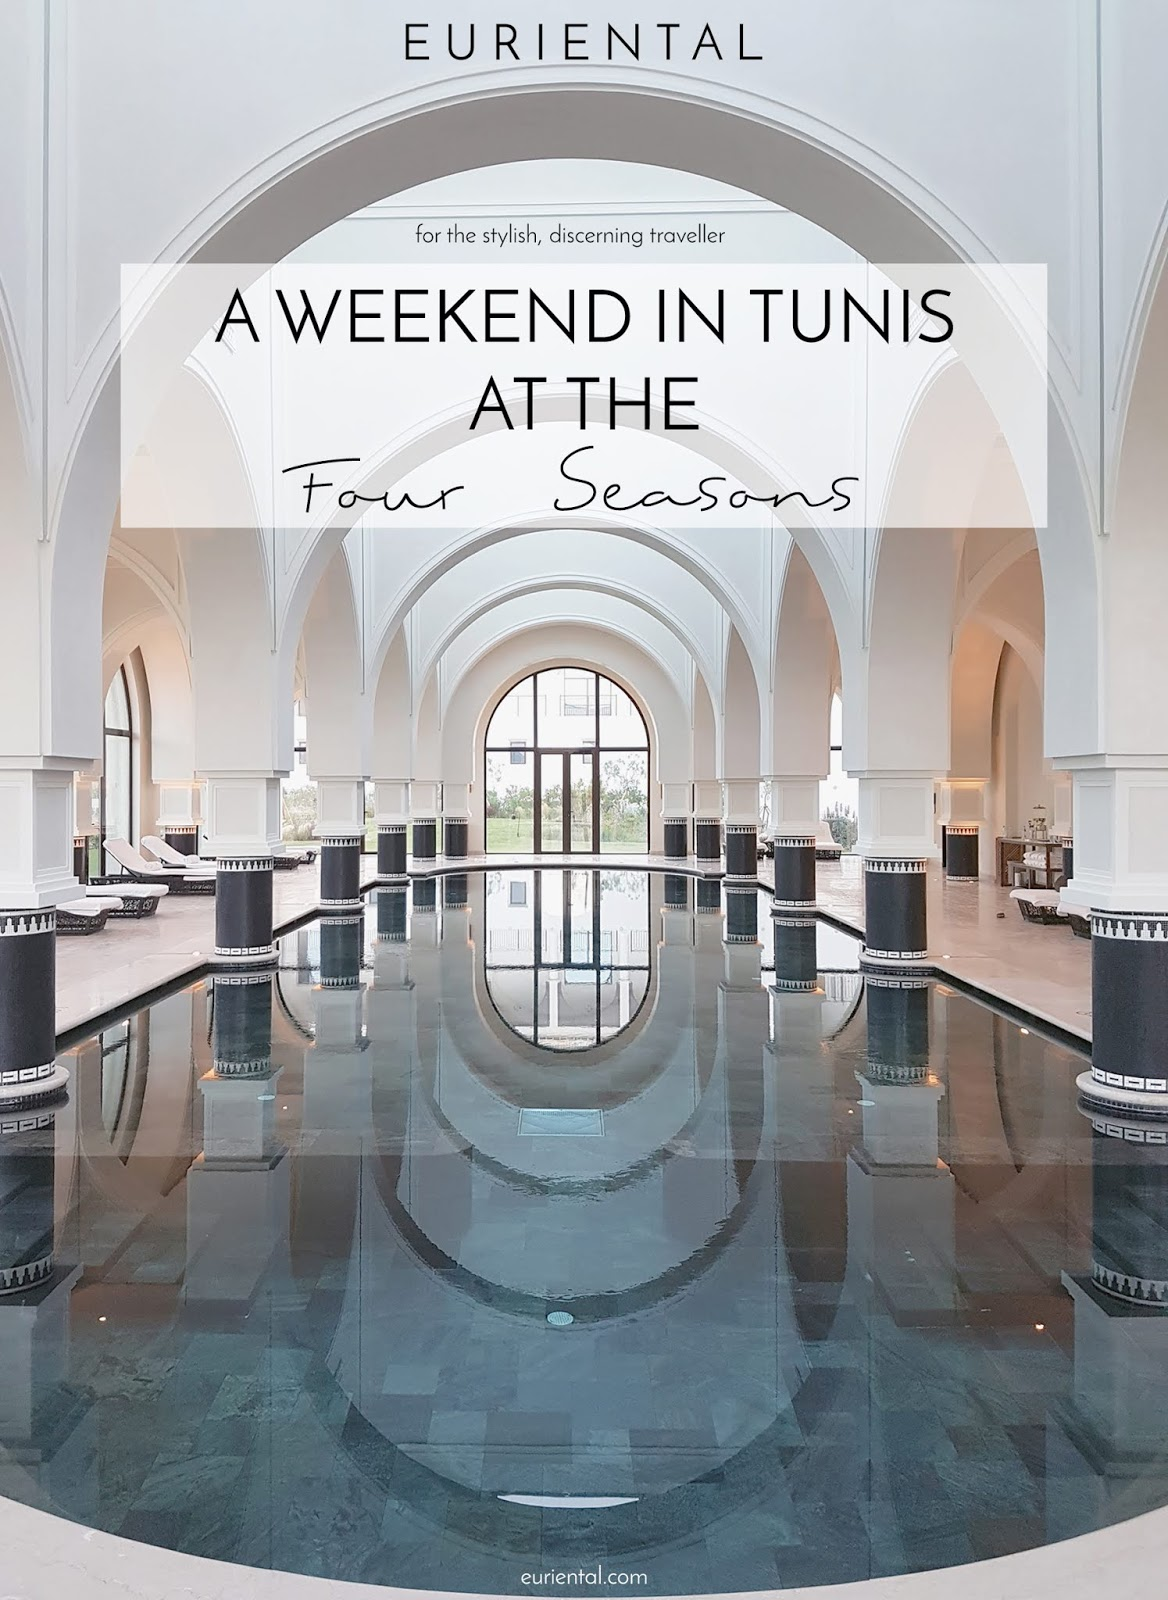 Euriental | luxury travel & style | Weekend in Tunis at the Four Seasons